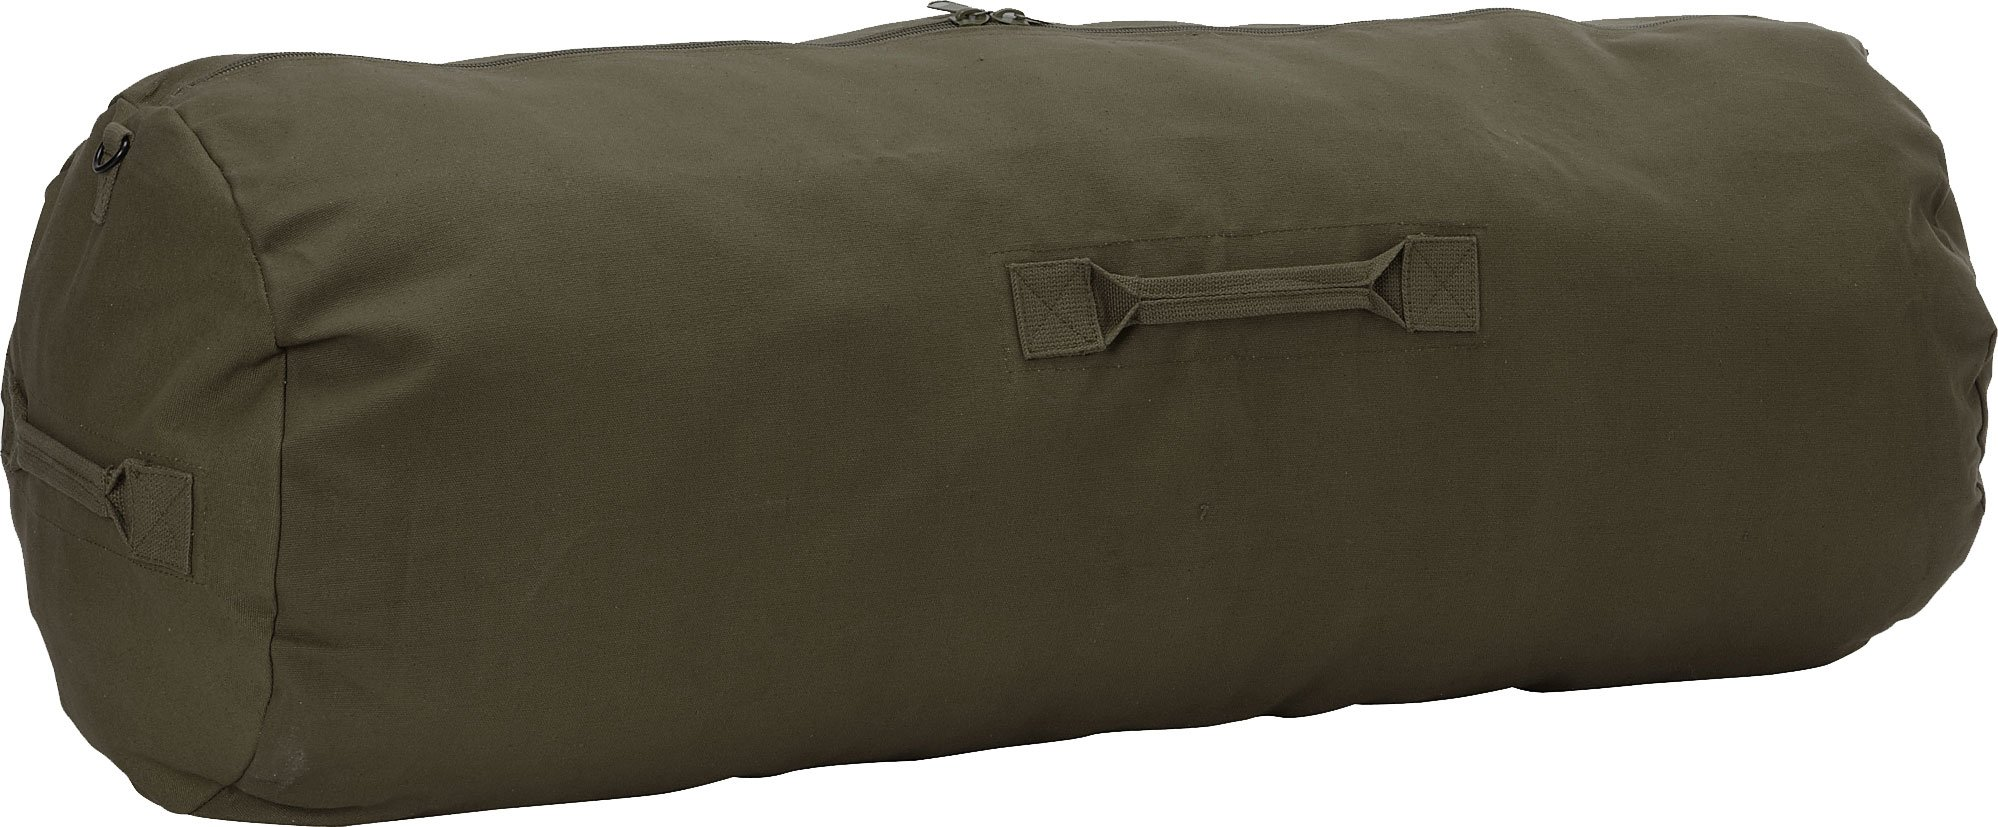 Army Universe Olive Drab Standard Side Zipper Canvas Duffle Bag (21'' x 36'')